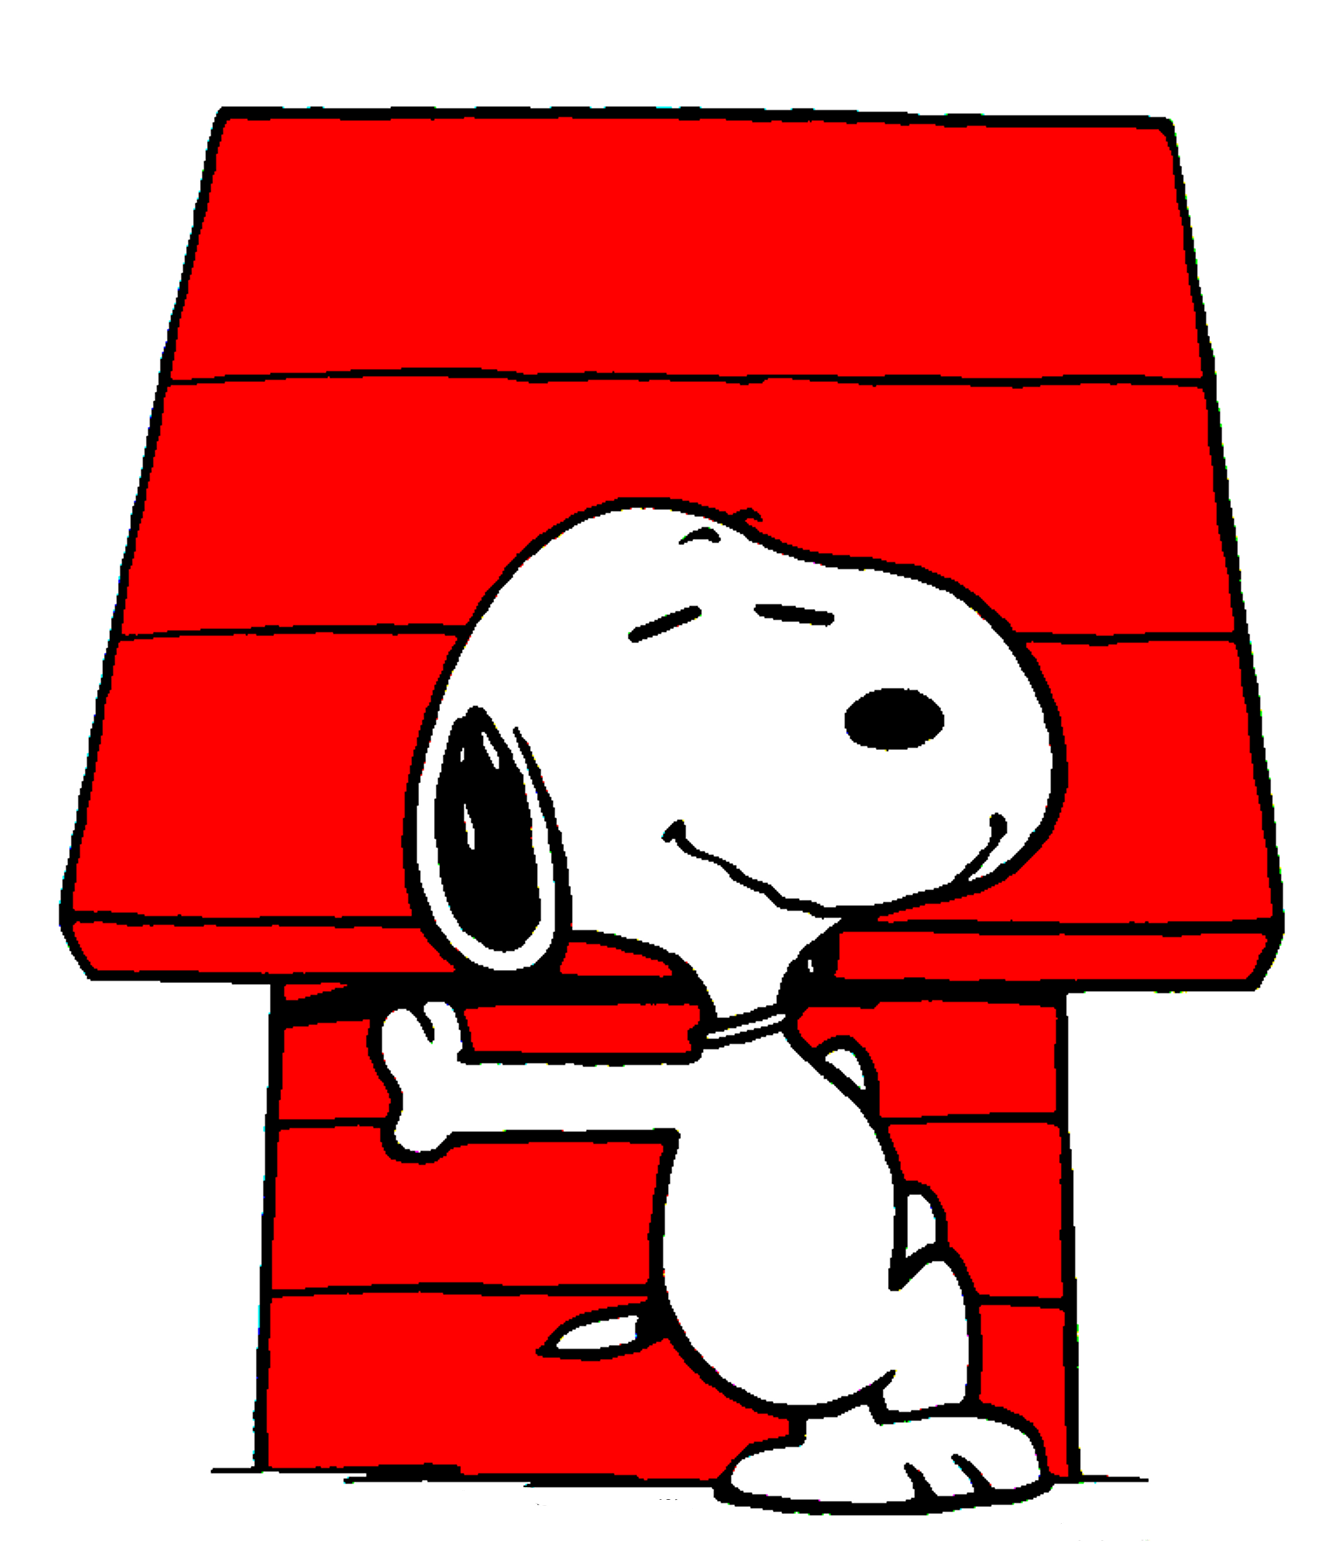 Snoopy dog house png. Image result for holidayart